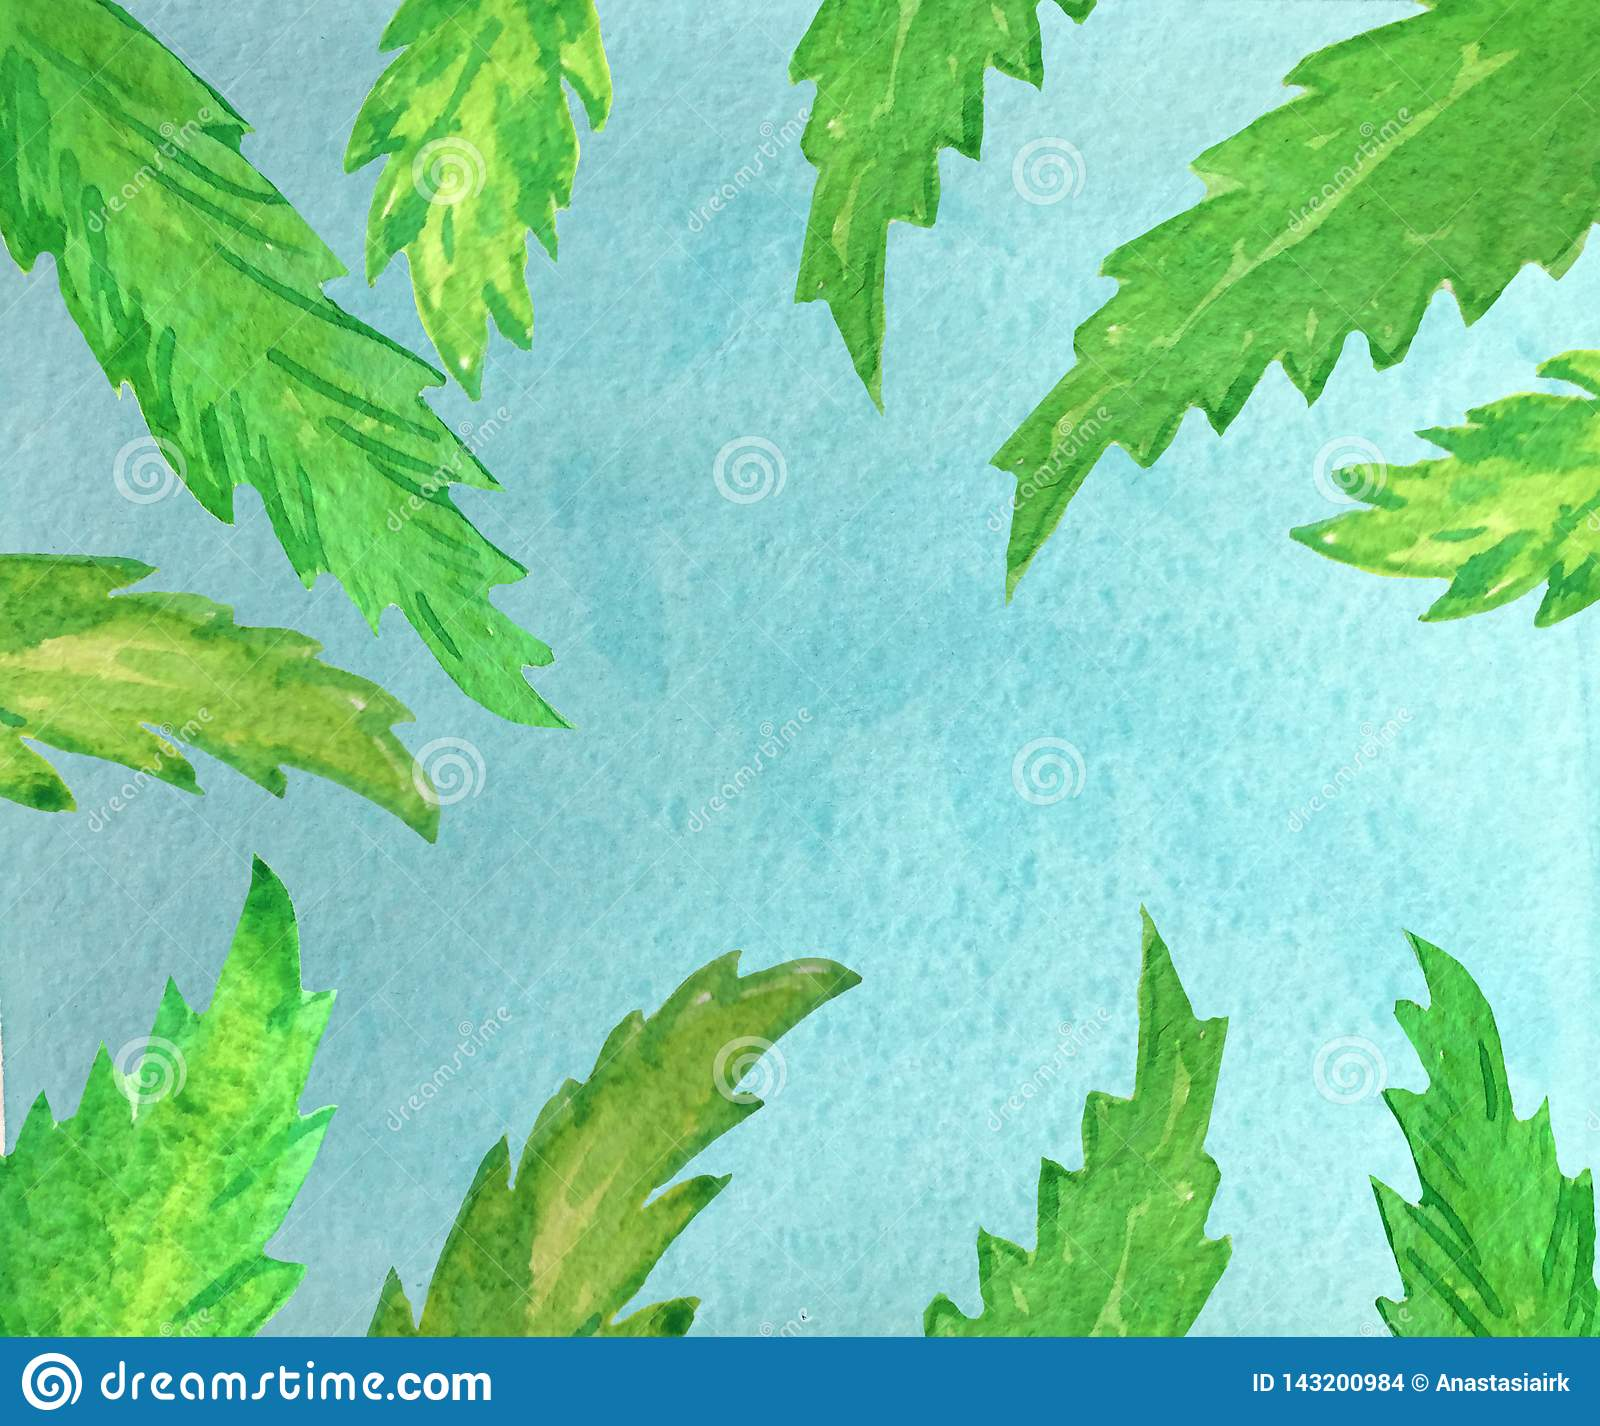 Blue sky and green palm leaves